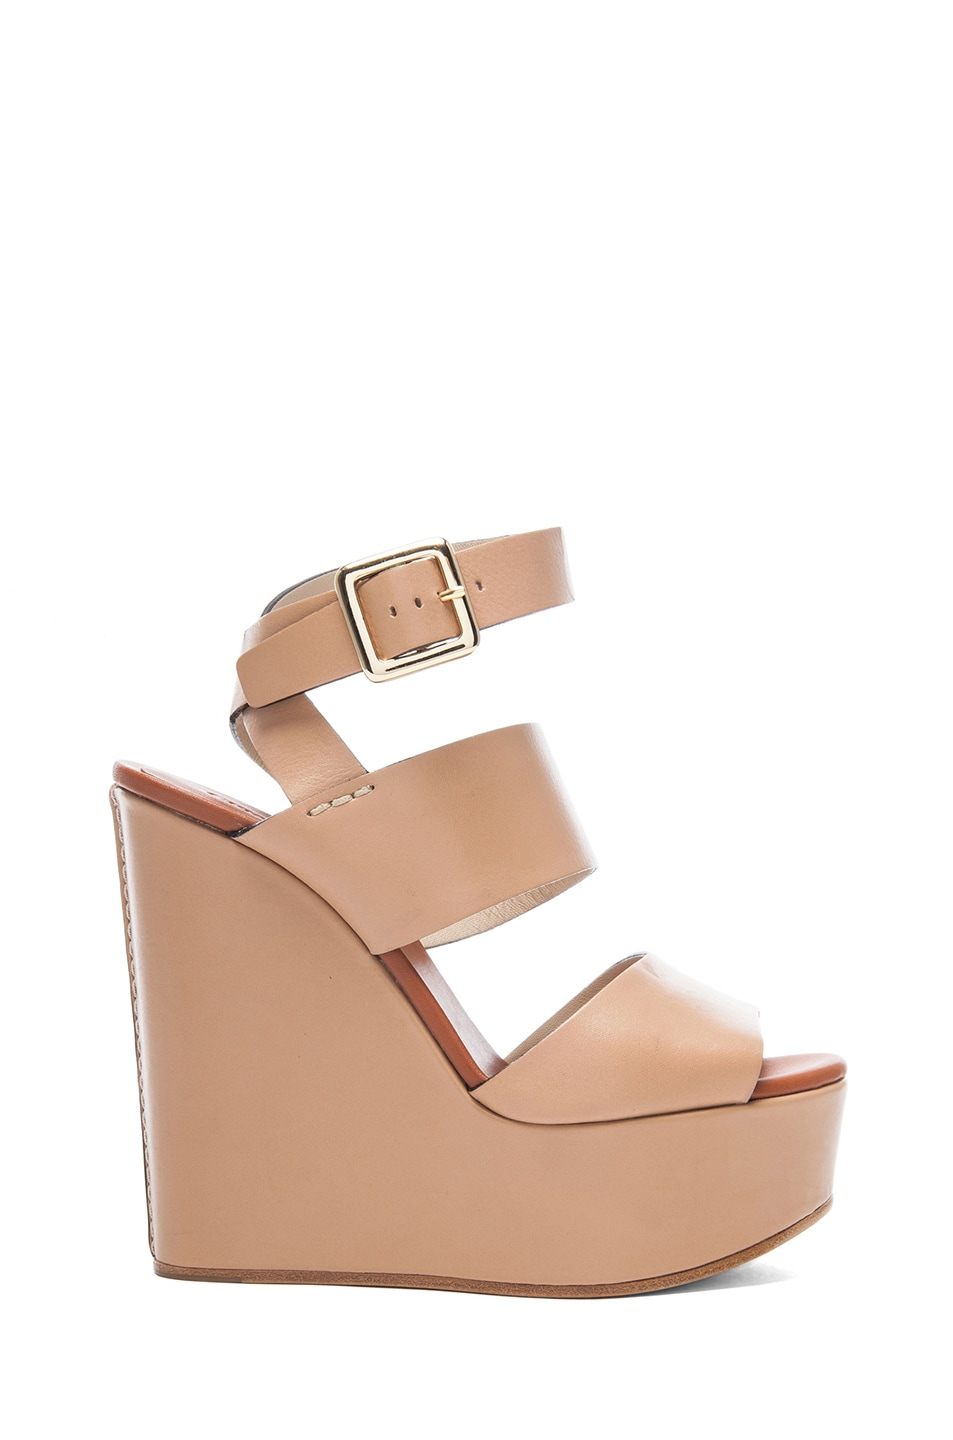 Image 1 of Chloe Leather Wedges in Wet Sand